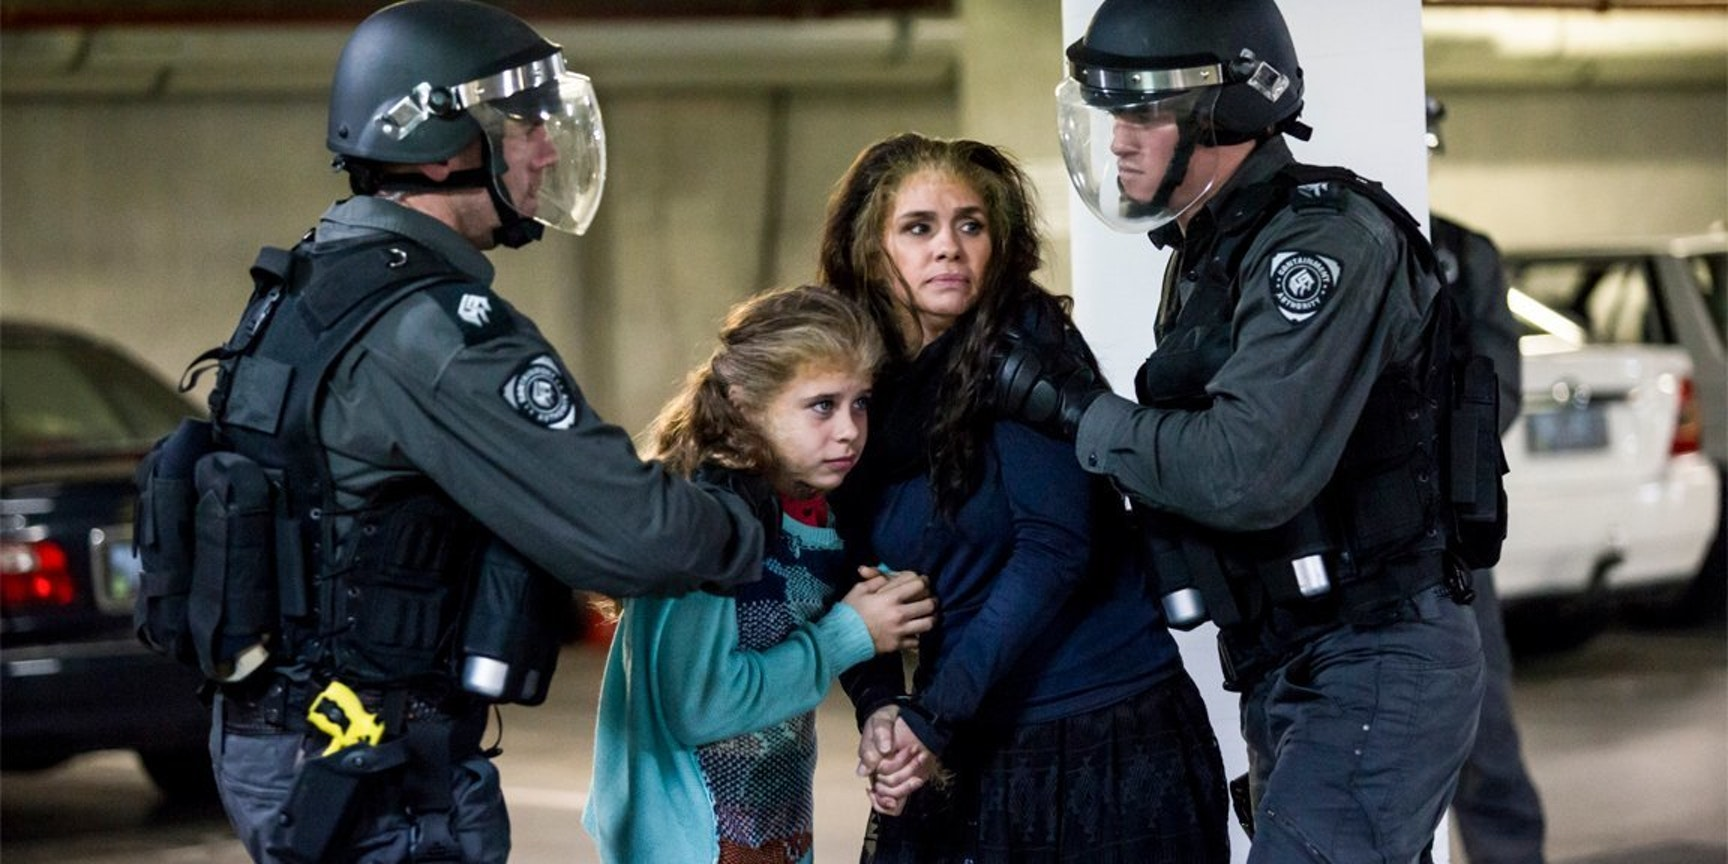 Can 'Cleverman' and Foreign TV Make You More Empathetic?